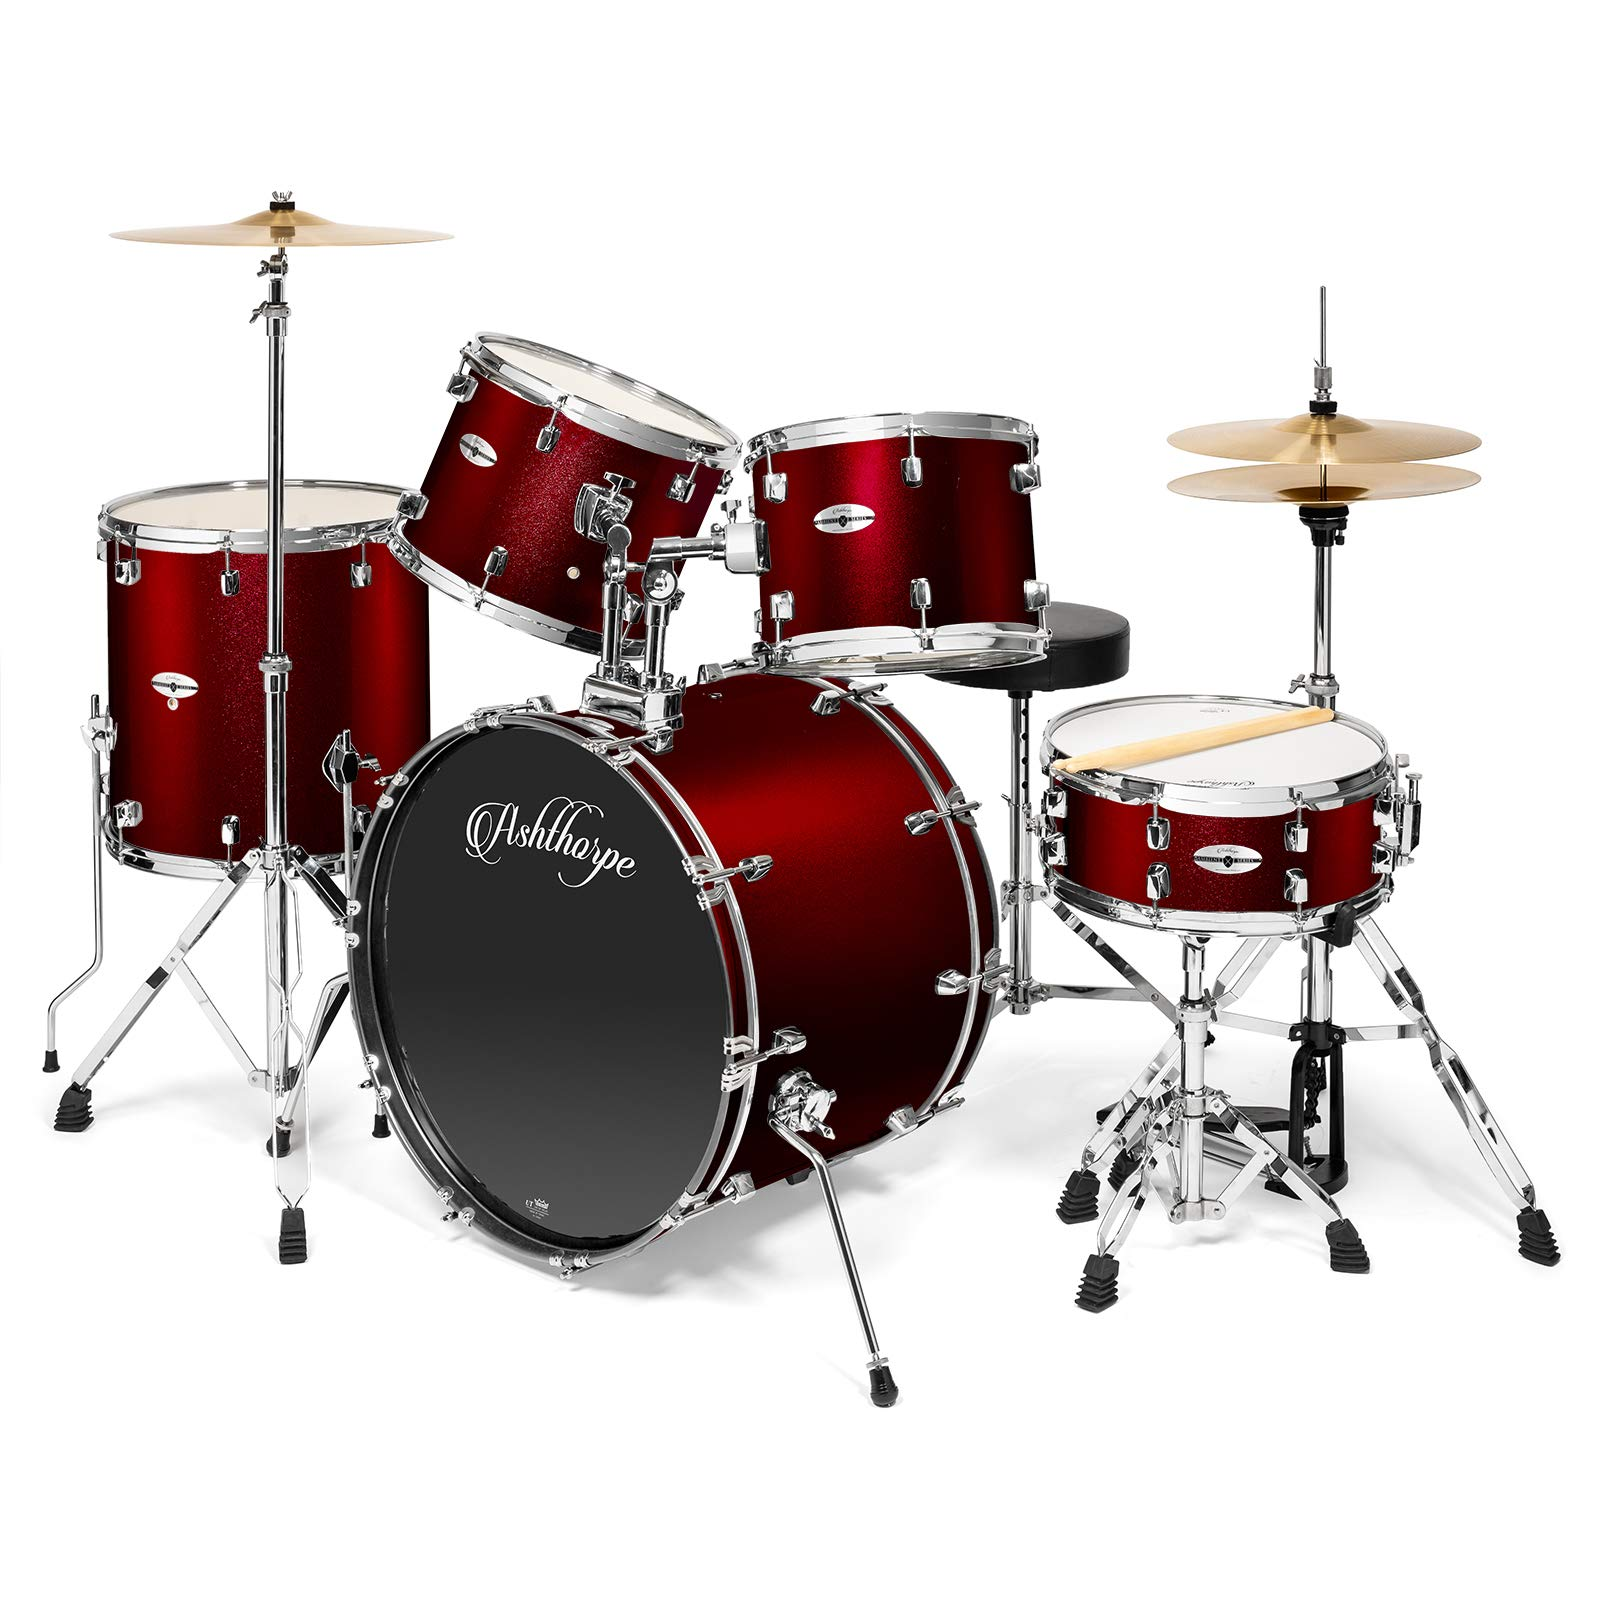 Ashthorpe 5-Piece Full Size Adult Drum Set with Remo Heads & Premium Brass Cymbals - Complete Professional Percussion Kit with Chrome Hardware - Red by Ashthorpe